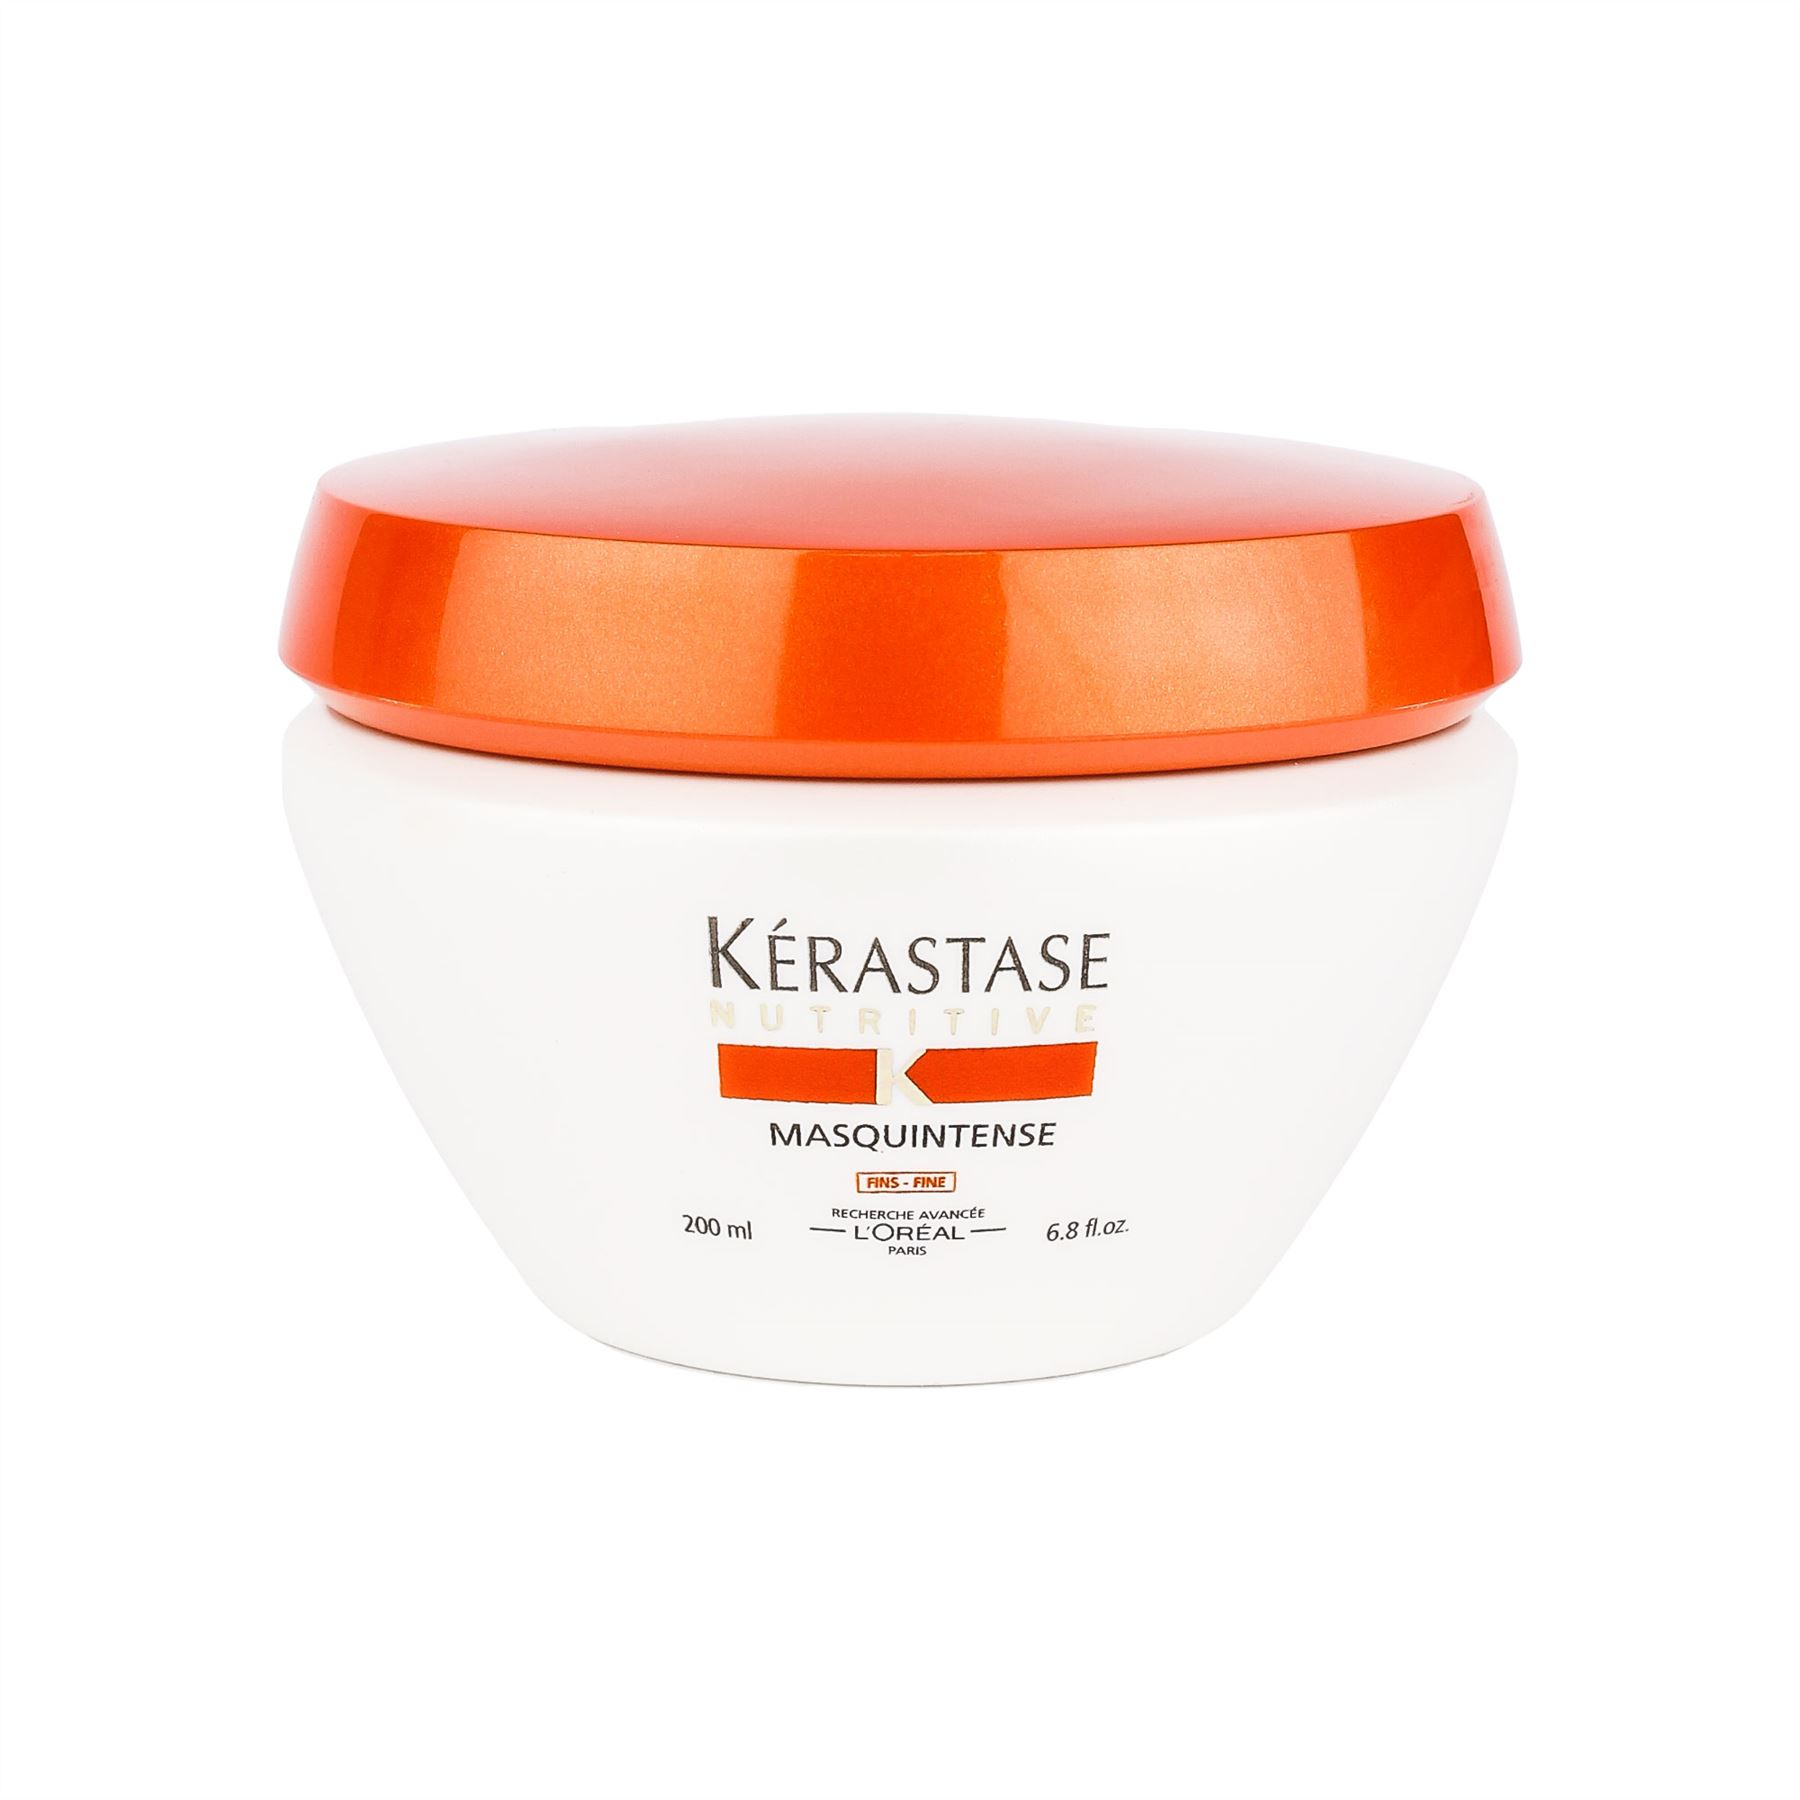 k rastase nutritive masquintense irisome nourishing treatment fine 200ml ebay. Black Bedroom Furniture Sets. Home Design Ideas